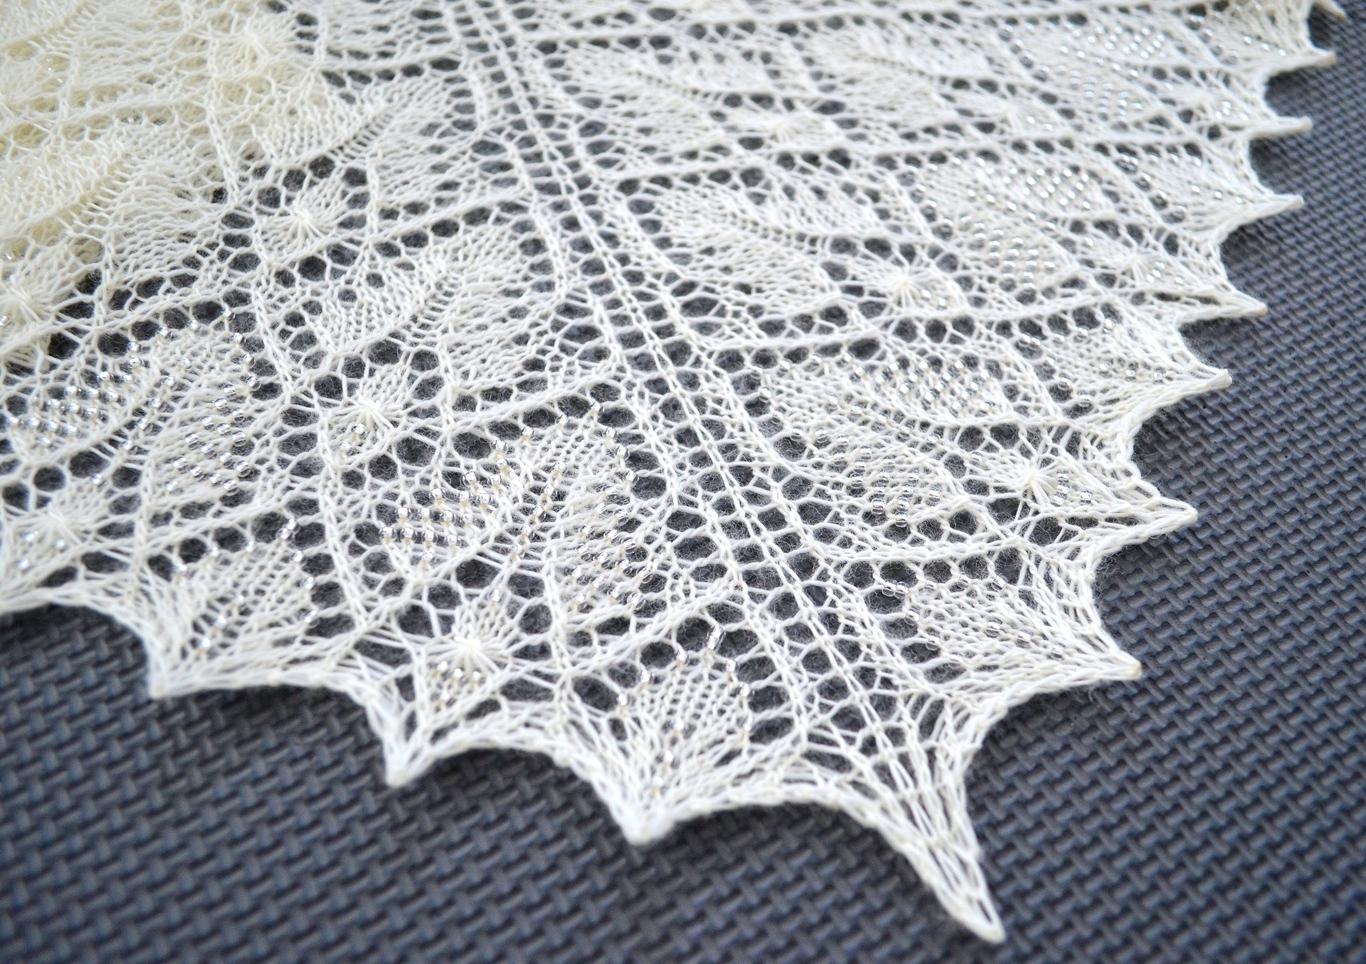 Knitting Pattern Lace Design : LaceKnit Designs: Pattern: Precious Lace Shawl